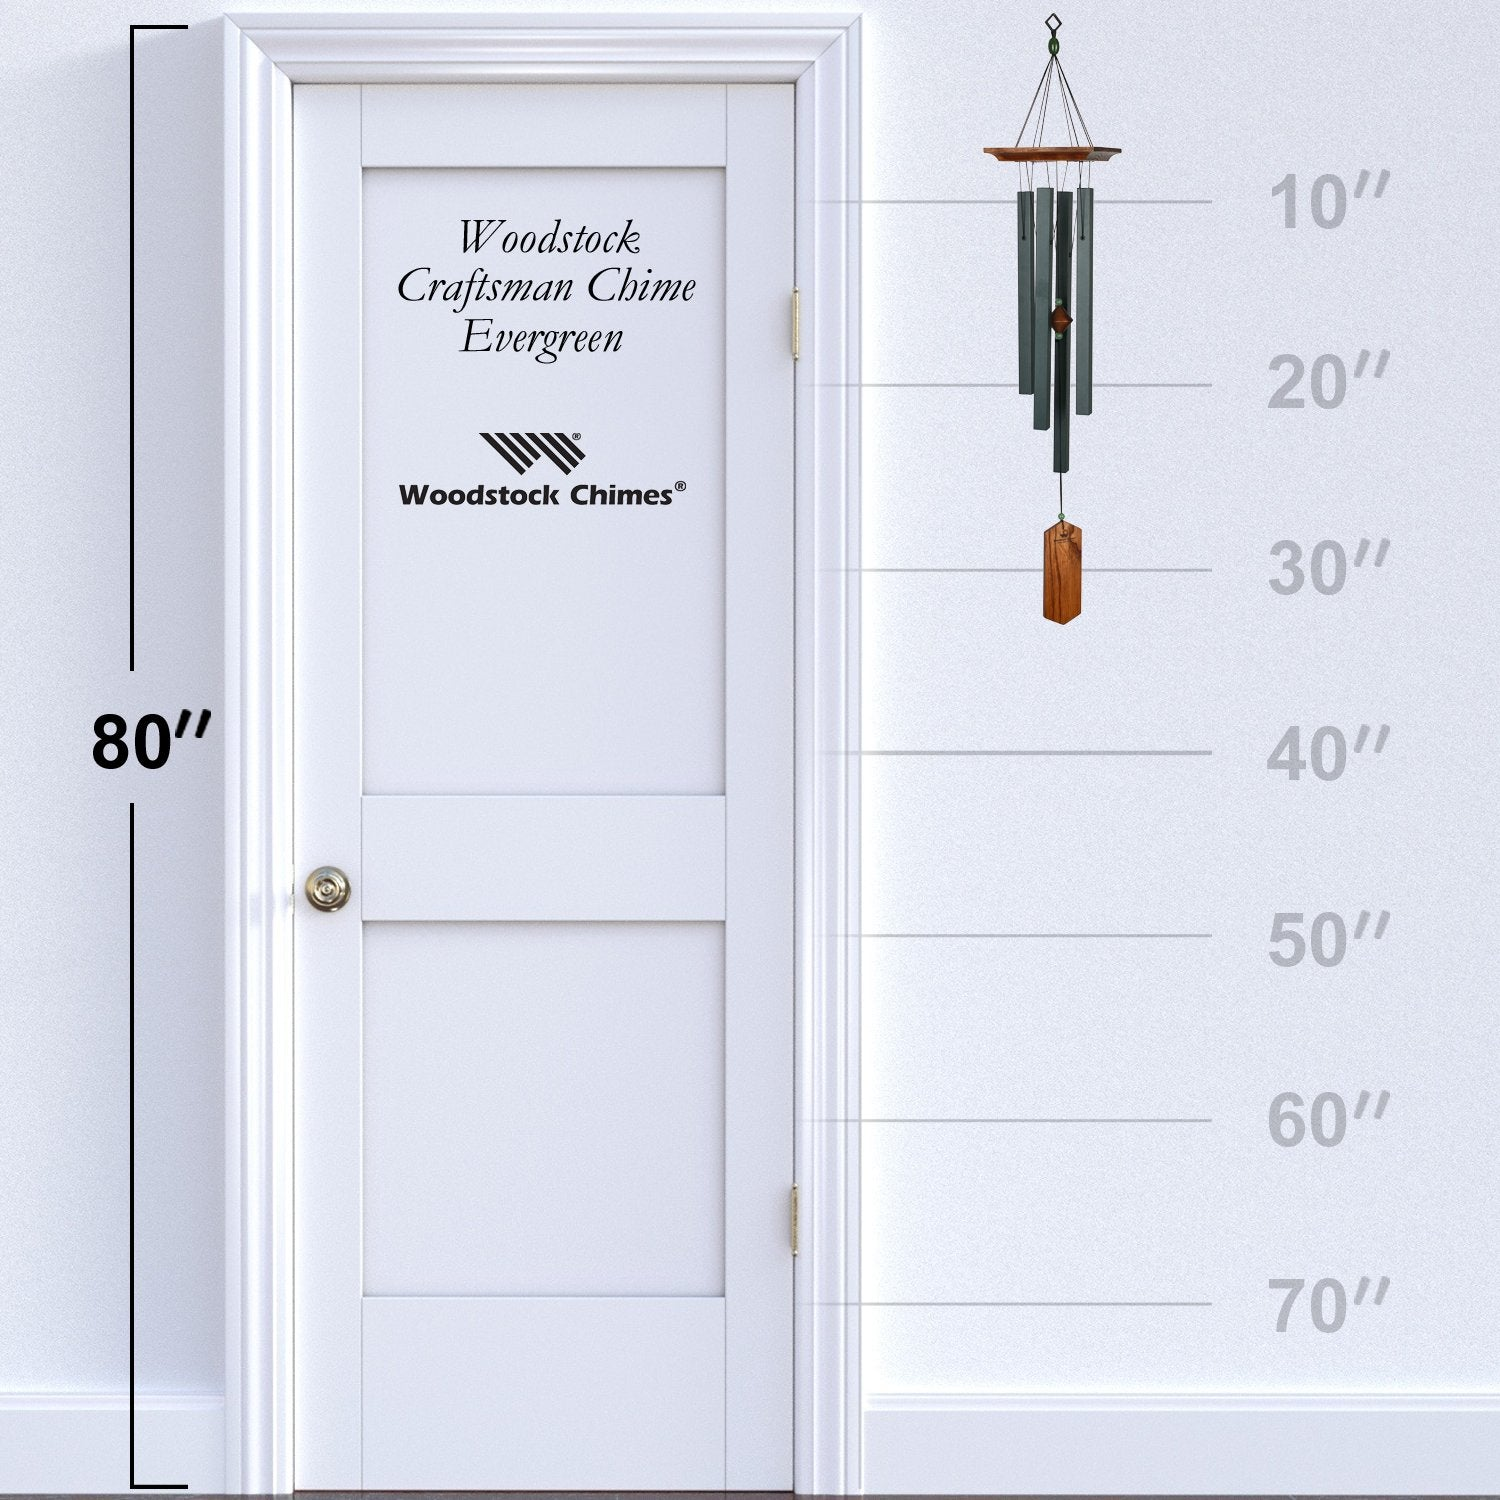 Craftsman Chime - Evergreen proportion image